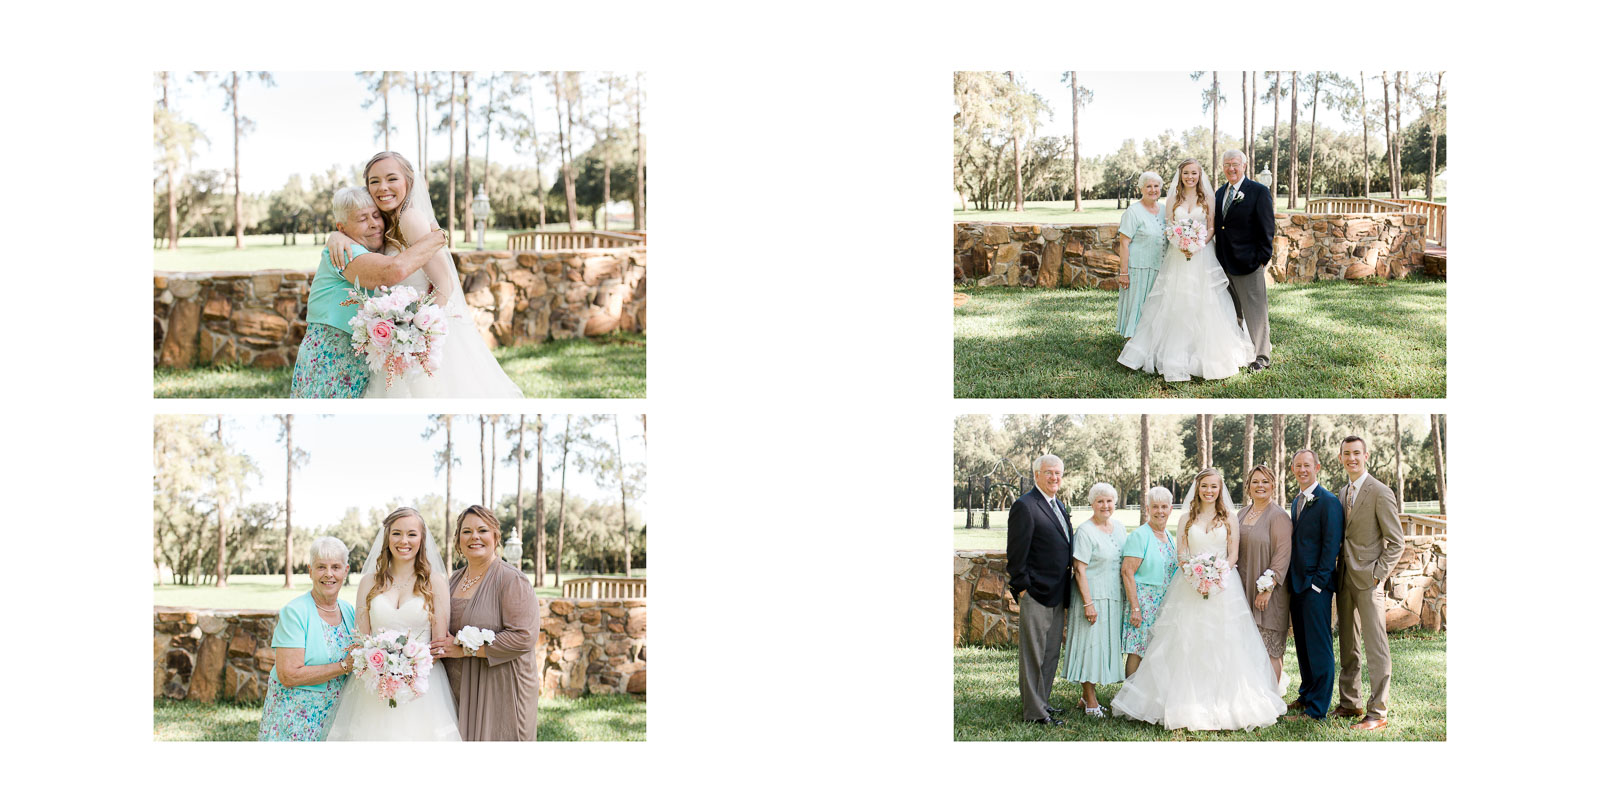 Carography-Studios-the-Lange-Farm-Weddings-Stone-Bridge-Events-Tampa-FL-9.jpg